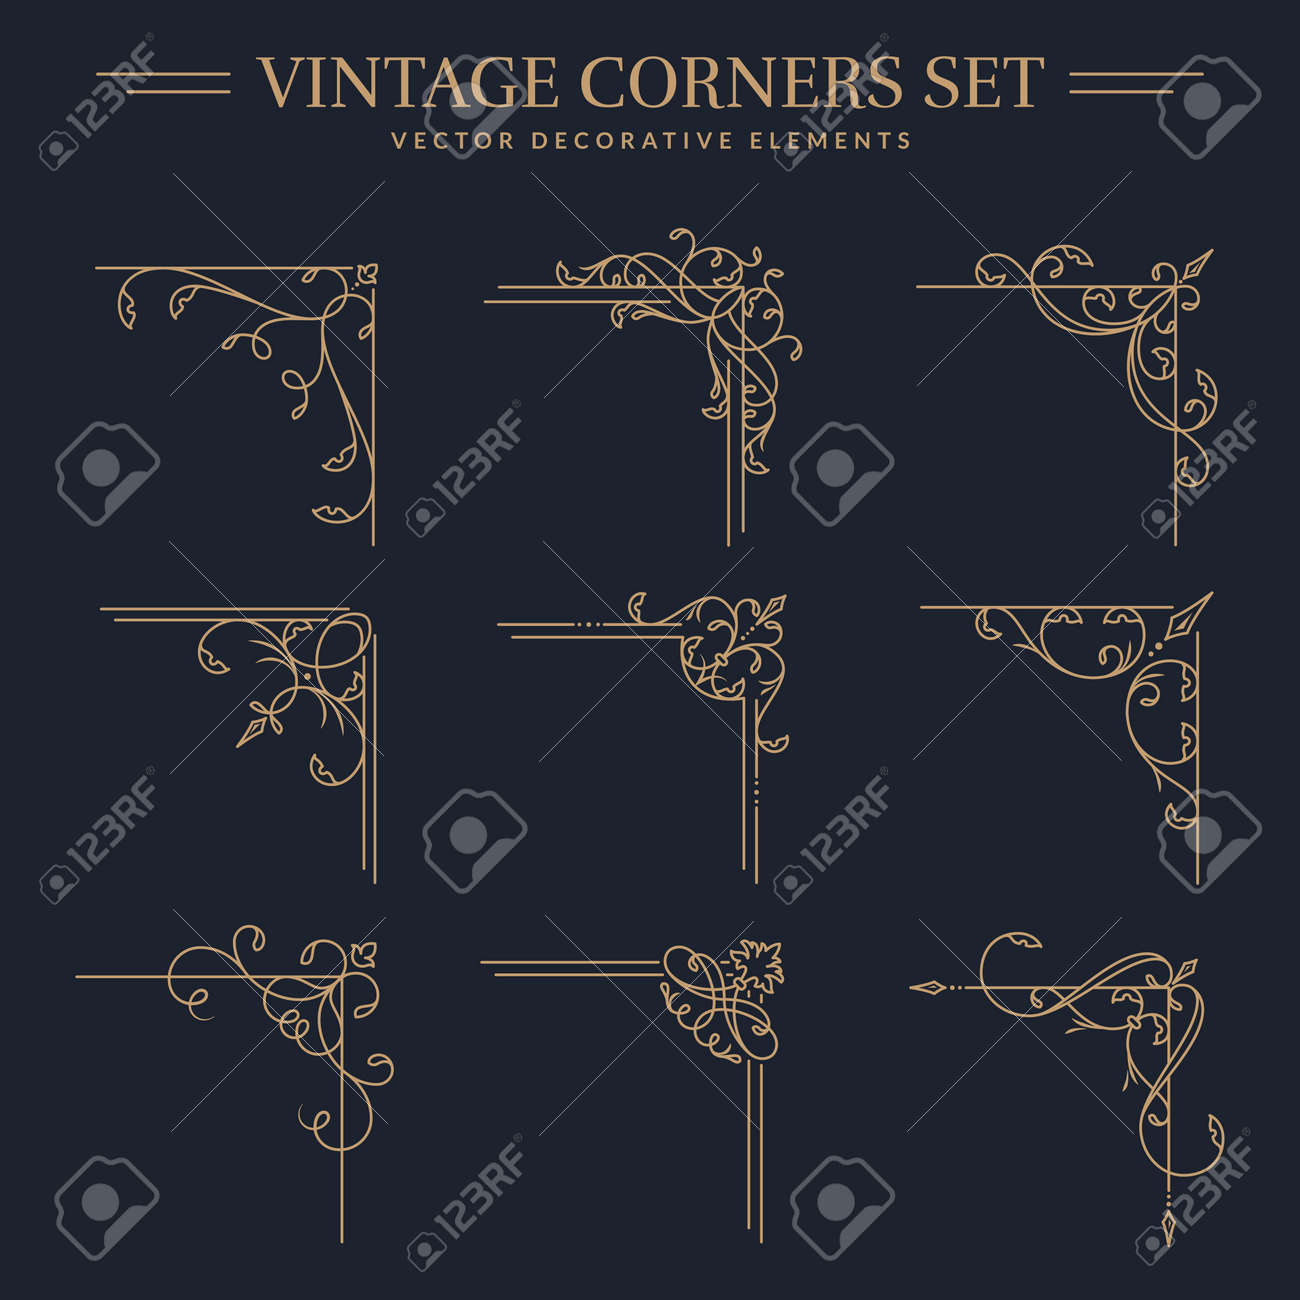 Vintage golden corners with different shapes. Set of isolated decorative angle borders. Flourish vector designs for greeting card, book page, restaurant menu, certificate, wedding invitation etc. - 169243860